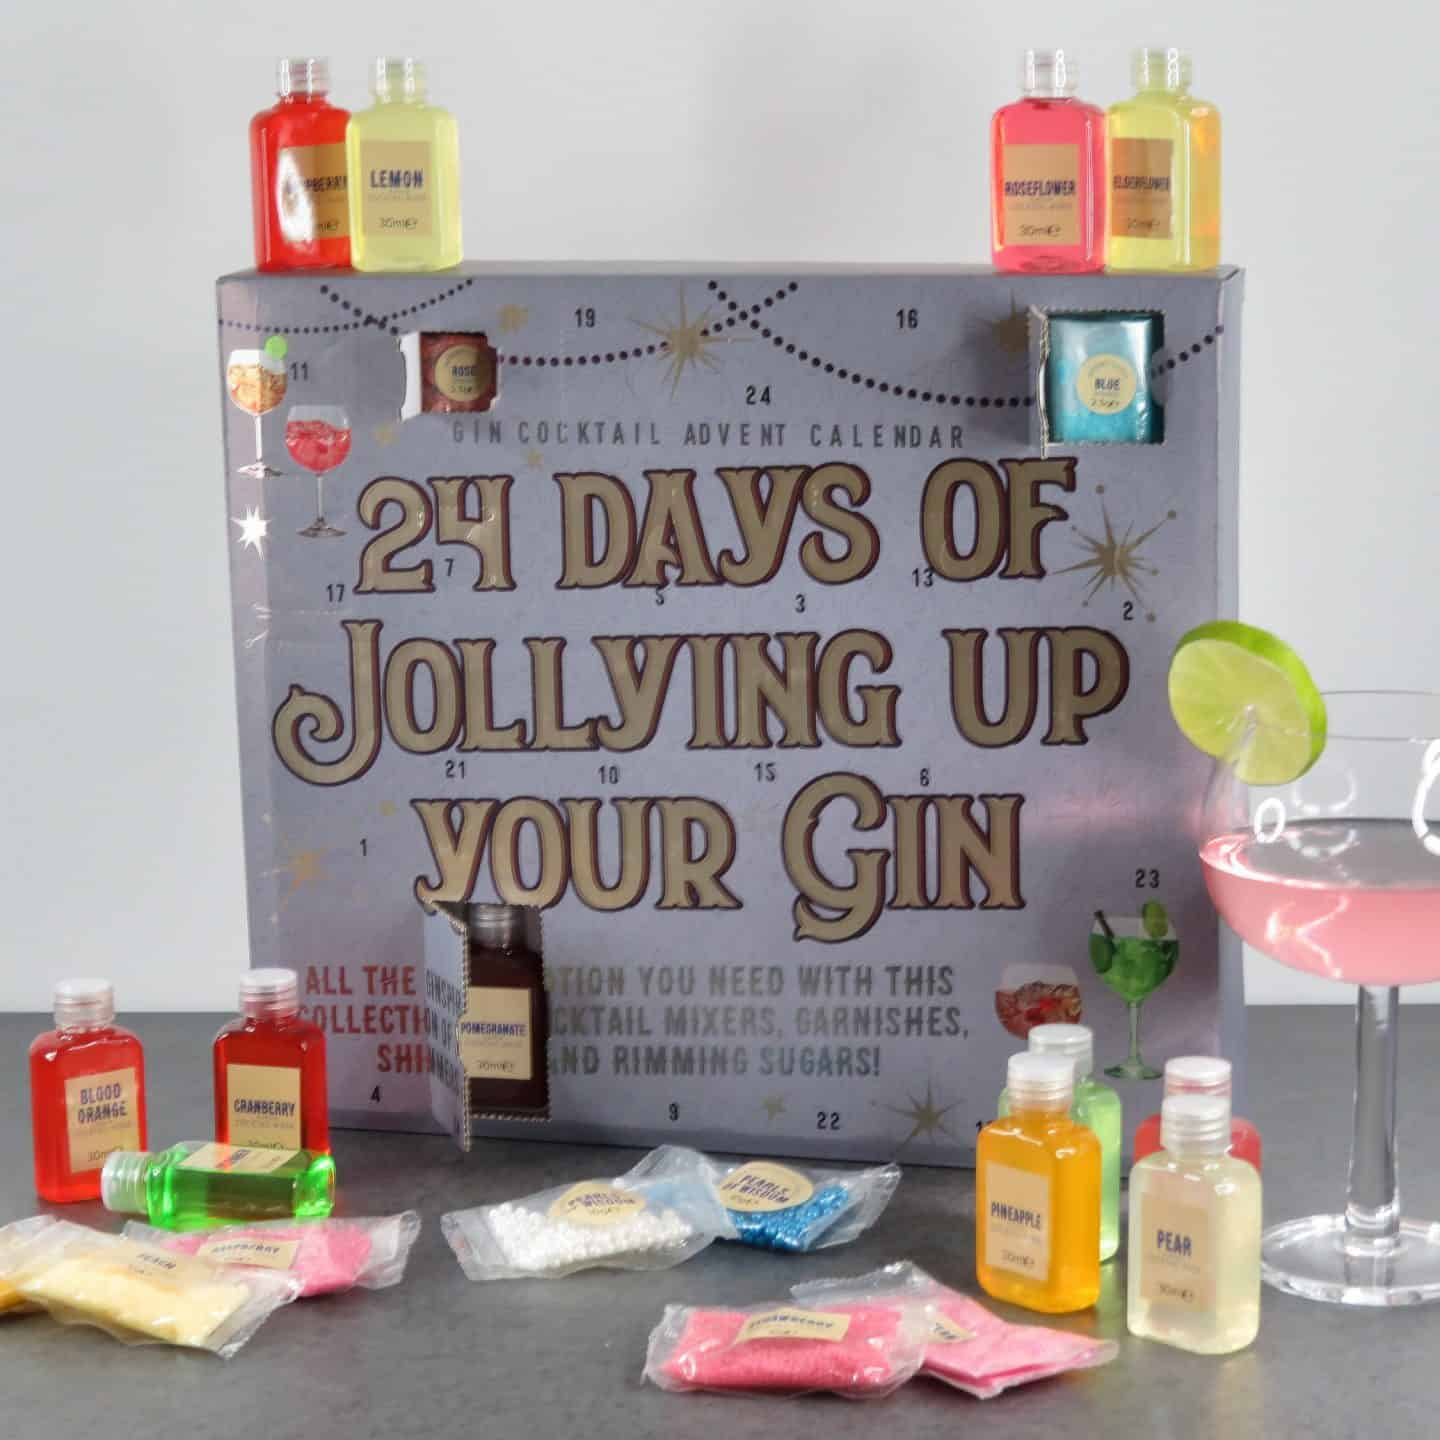 The best adult advent calendar. 24 days of jollying up your gin